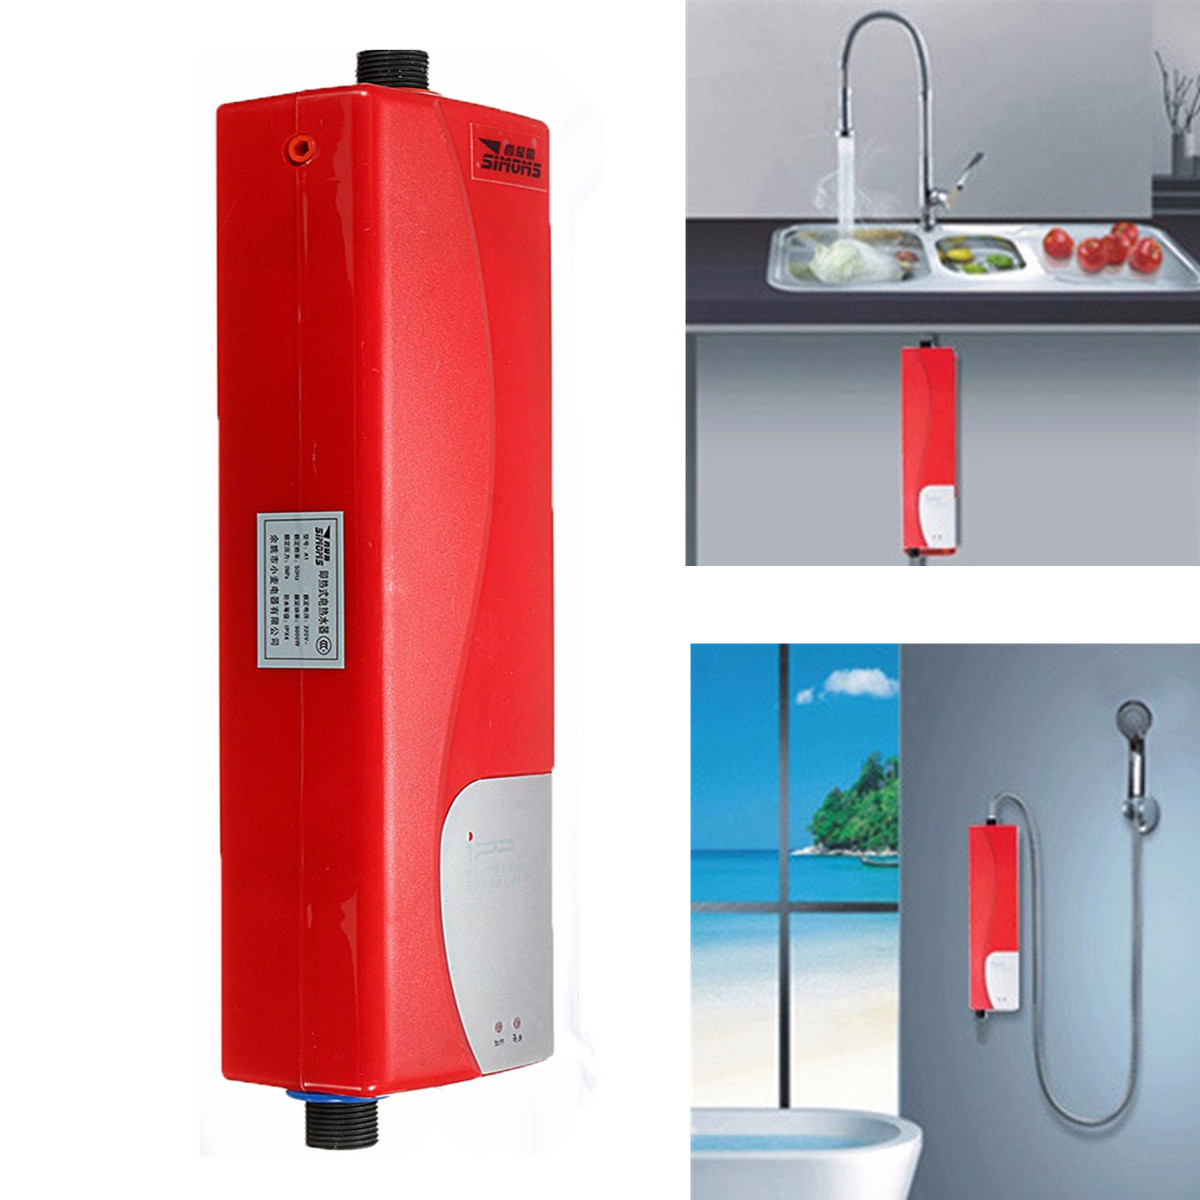 220V 3000W Portable Mini Tankless Electric Shower Instant Kitchen Bathroom  Water Heater